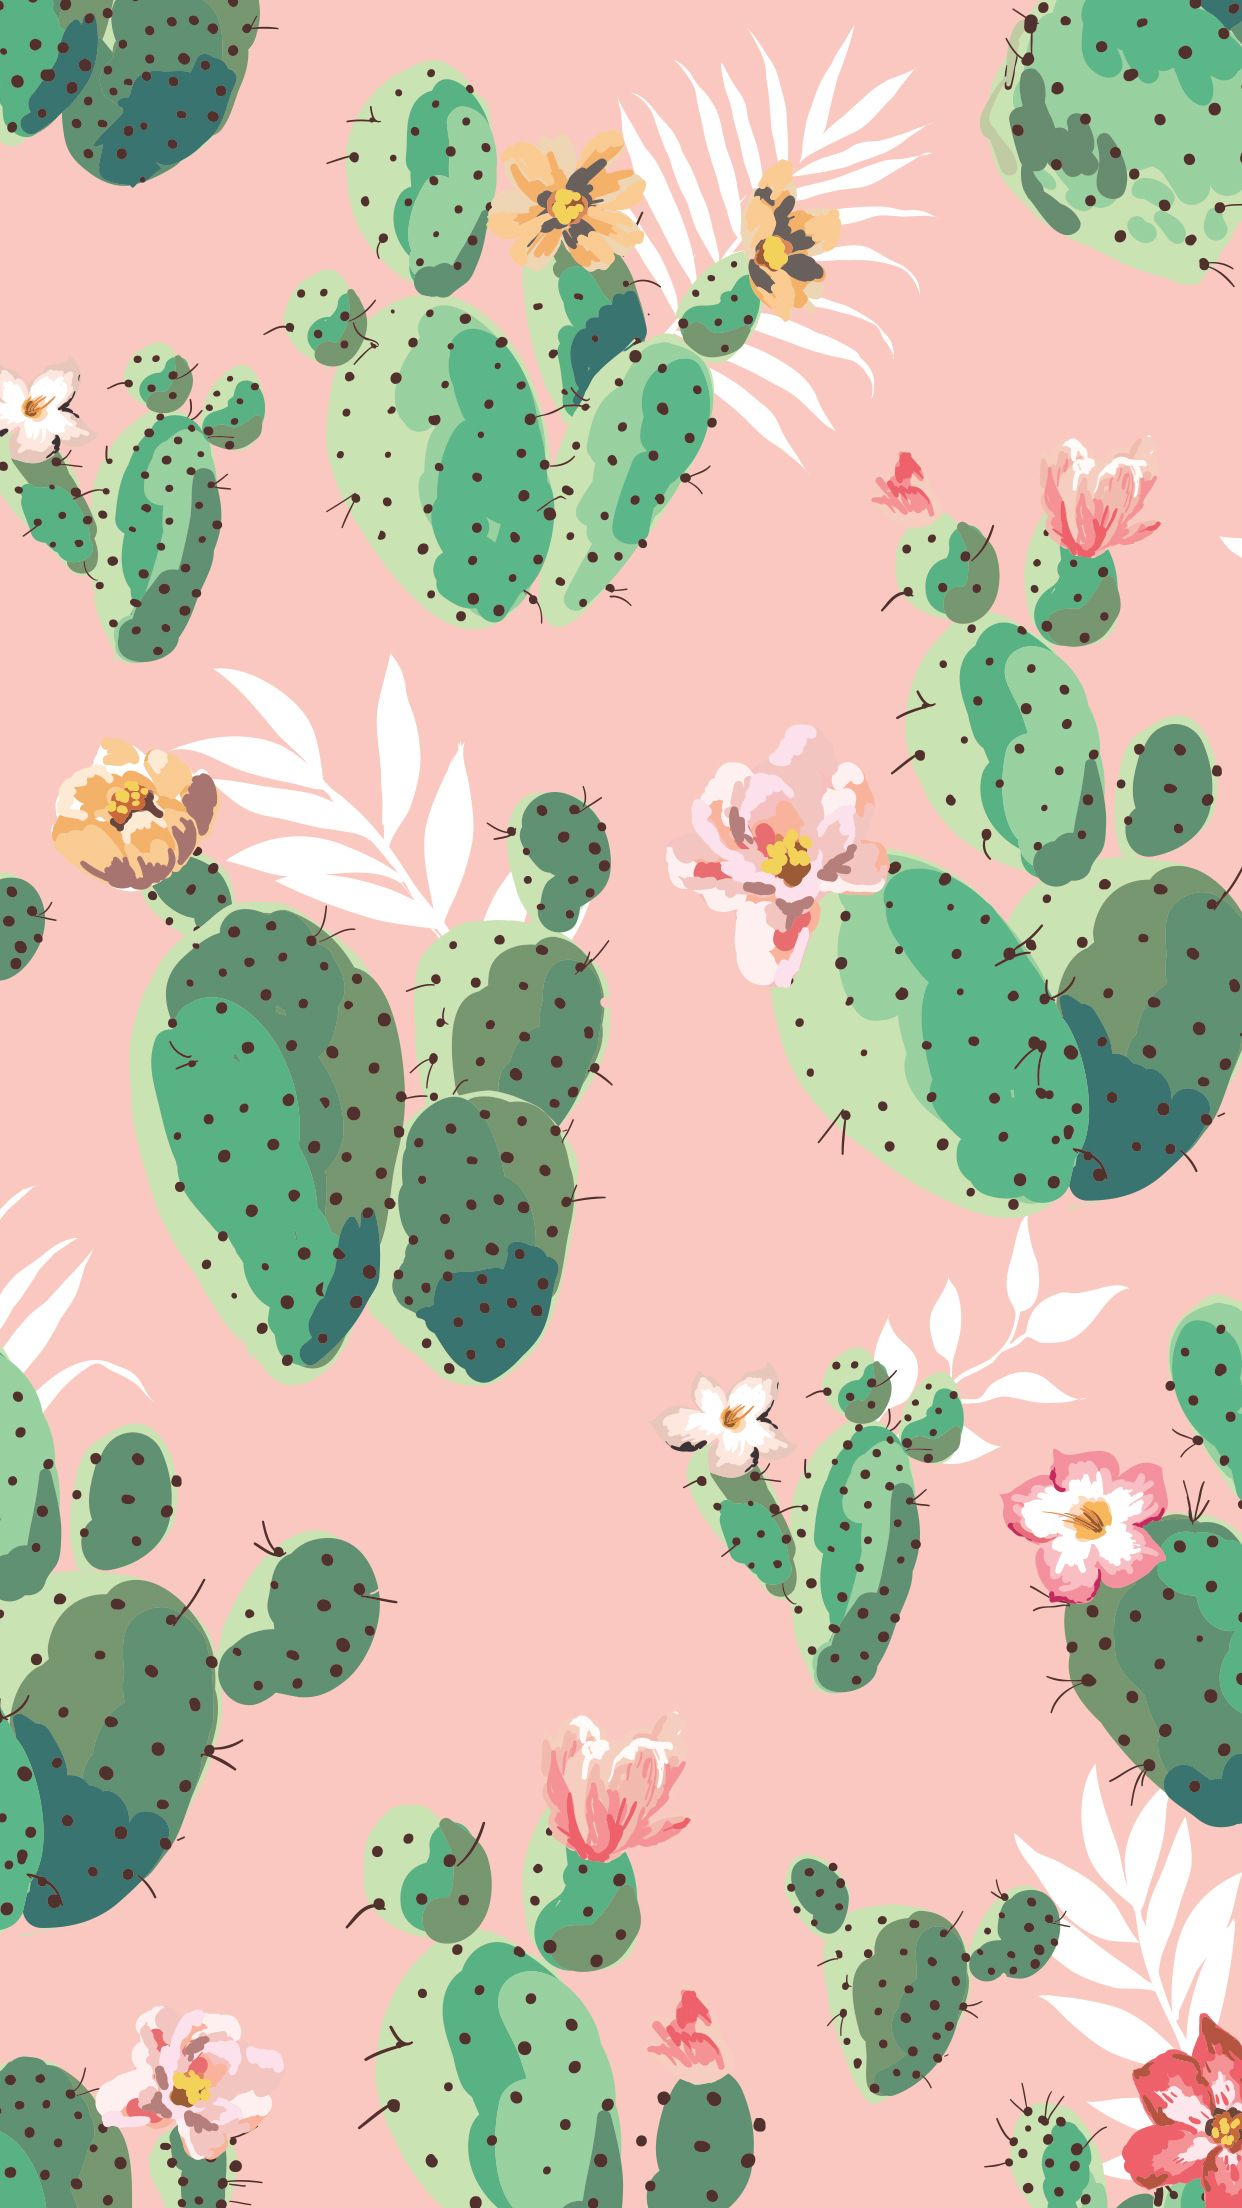 Pink And Green Cactus Iphone Wallpaper Iphone Wallpaper Mobile Wallpaper Cute Wallpapers